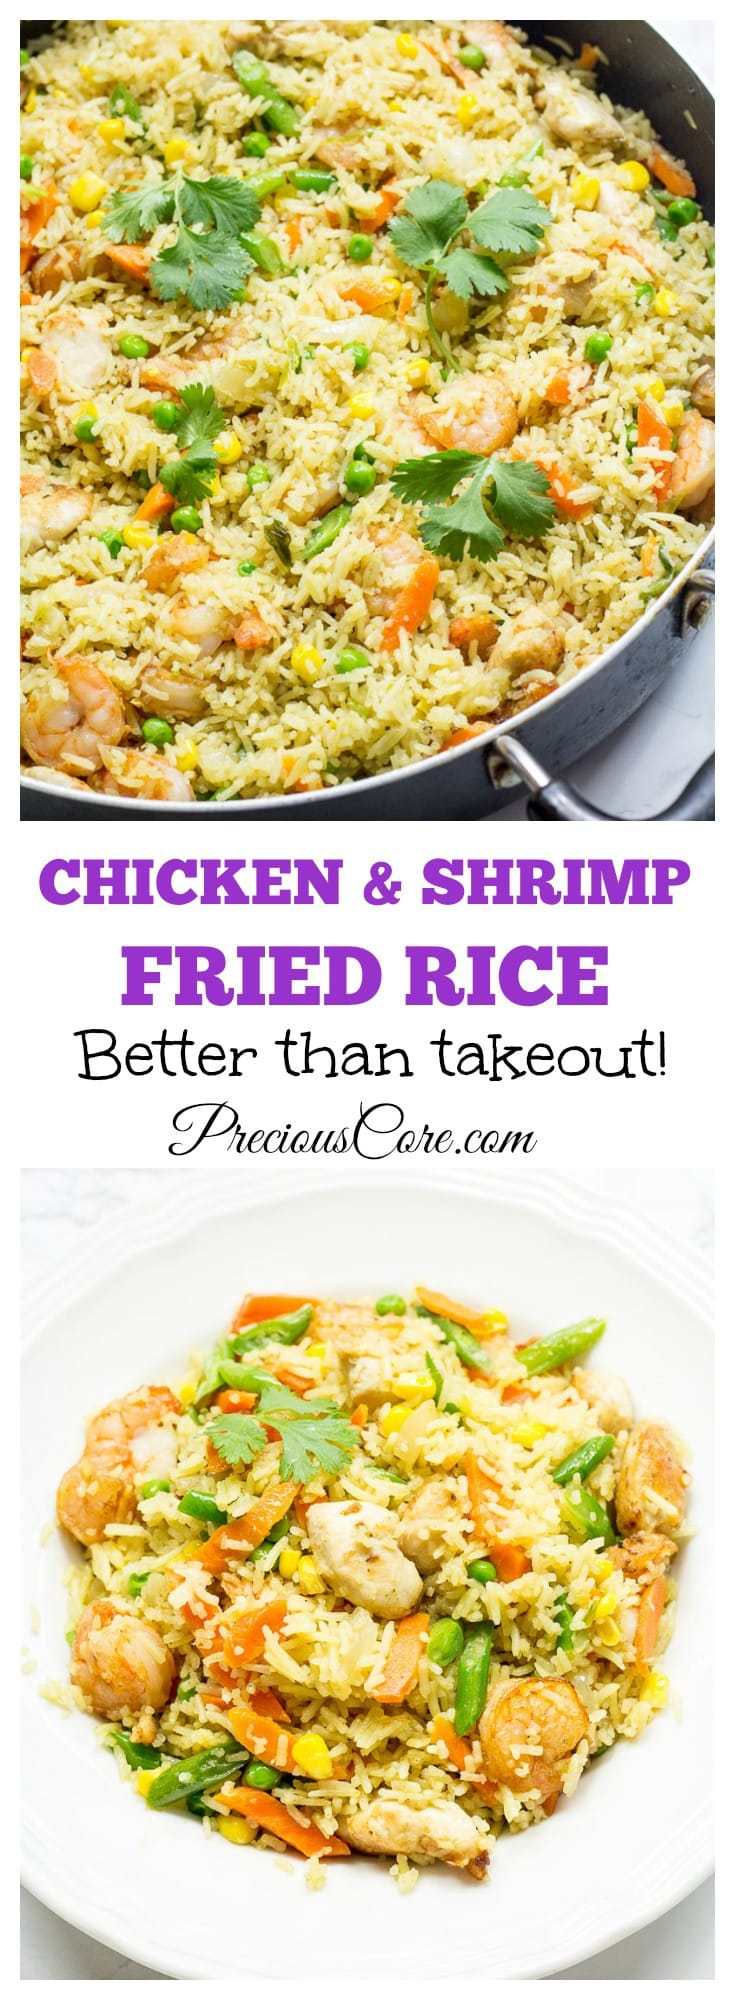 Best fried rice recipe